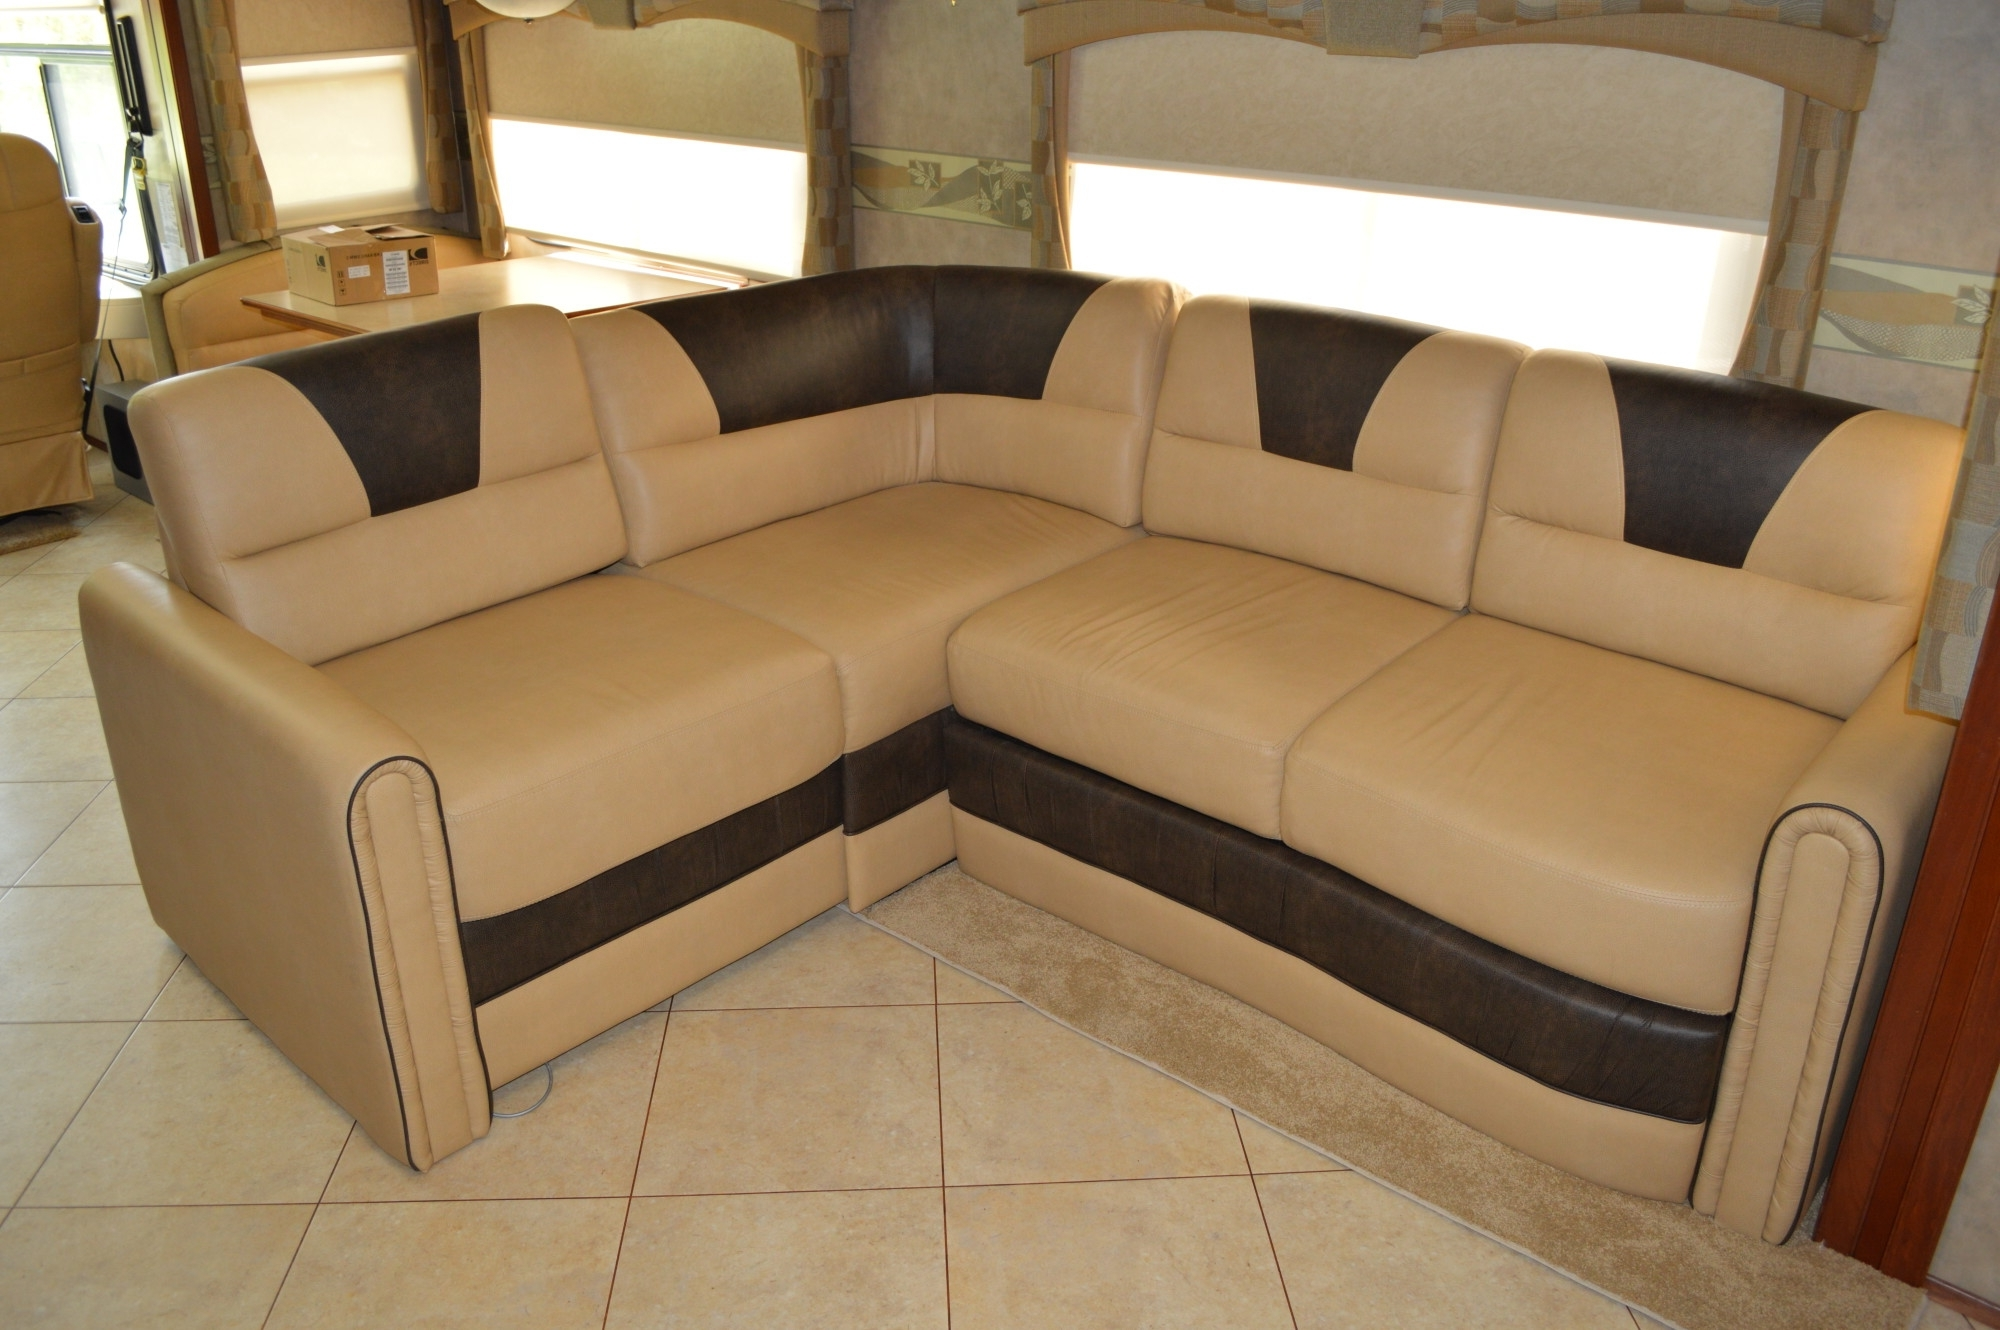 Sofa How To Make Rv Bed More Comfortable Sleeper With Regard